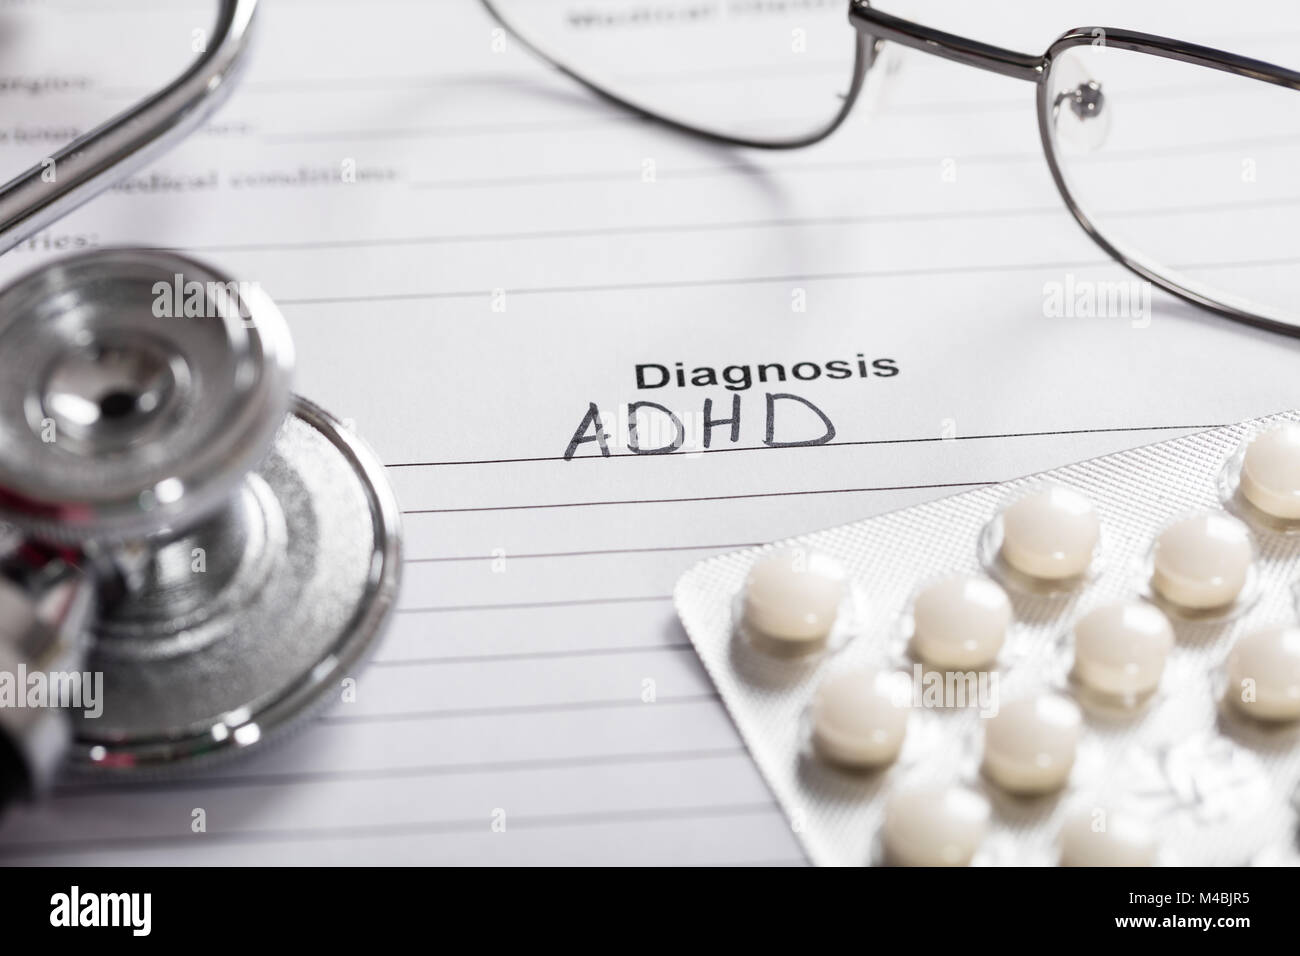 Pills;Glasses And Stethoscope With Text Diagnosis ADHD On Paper - Stock Image